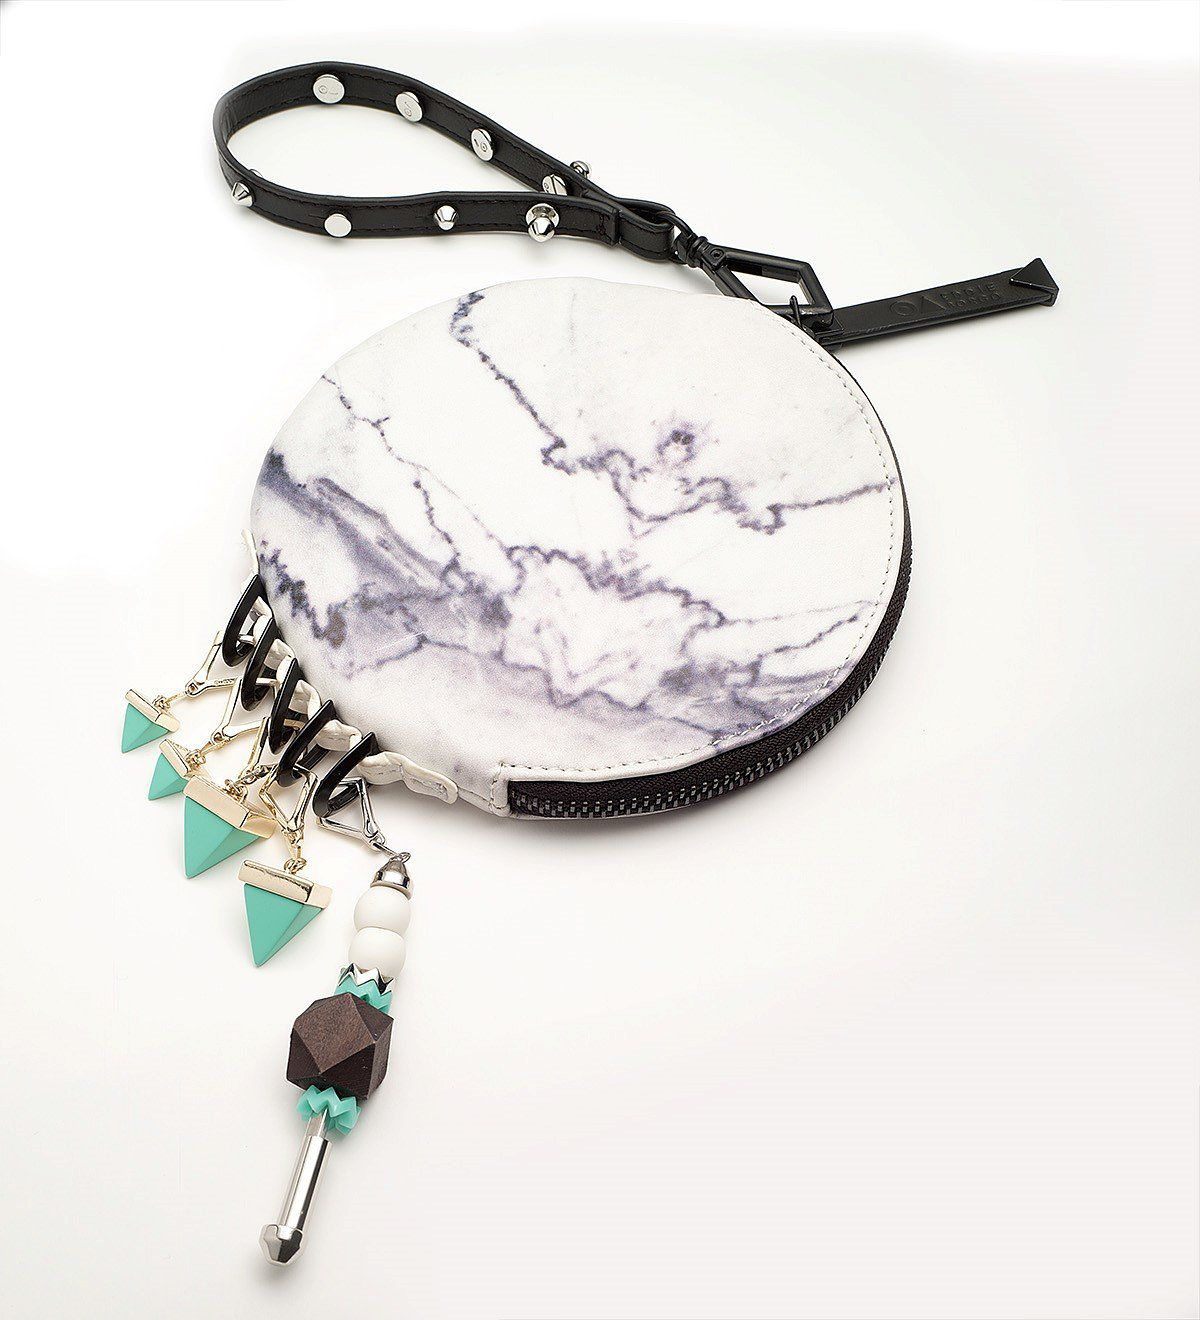 Small circle bag ($20) with assorted charms and studs ($8 to $13). Photo: Vogue